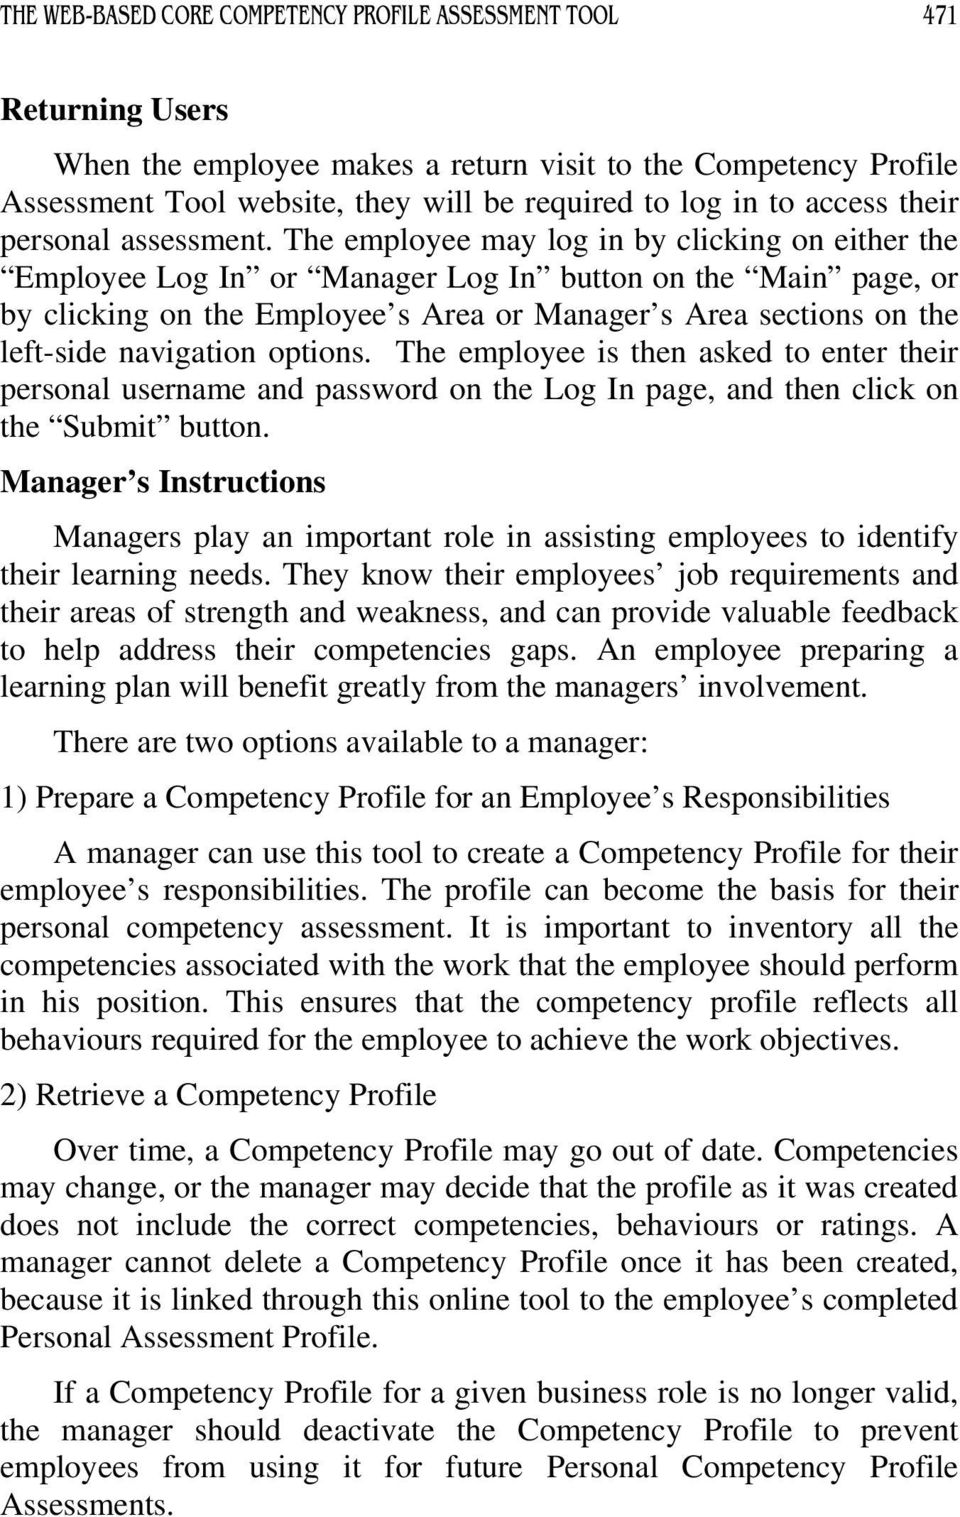 The employee may log in by clicking on either the Employee Log In or Manager Log In button on the Main page, or by clicking on the Employee s Area or Manager s Area sections on the left-side